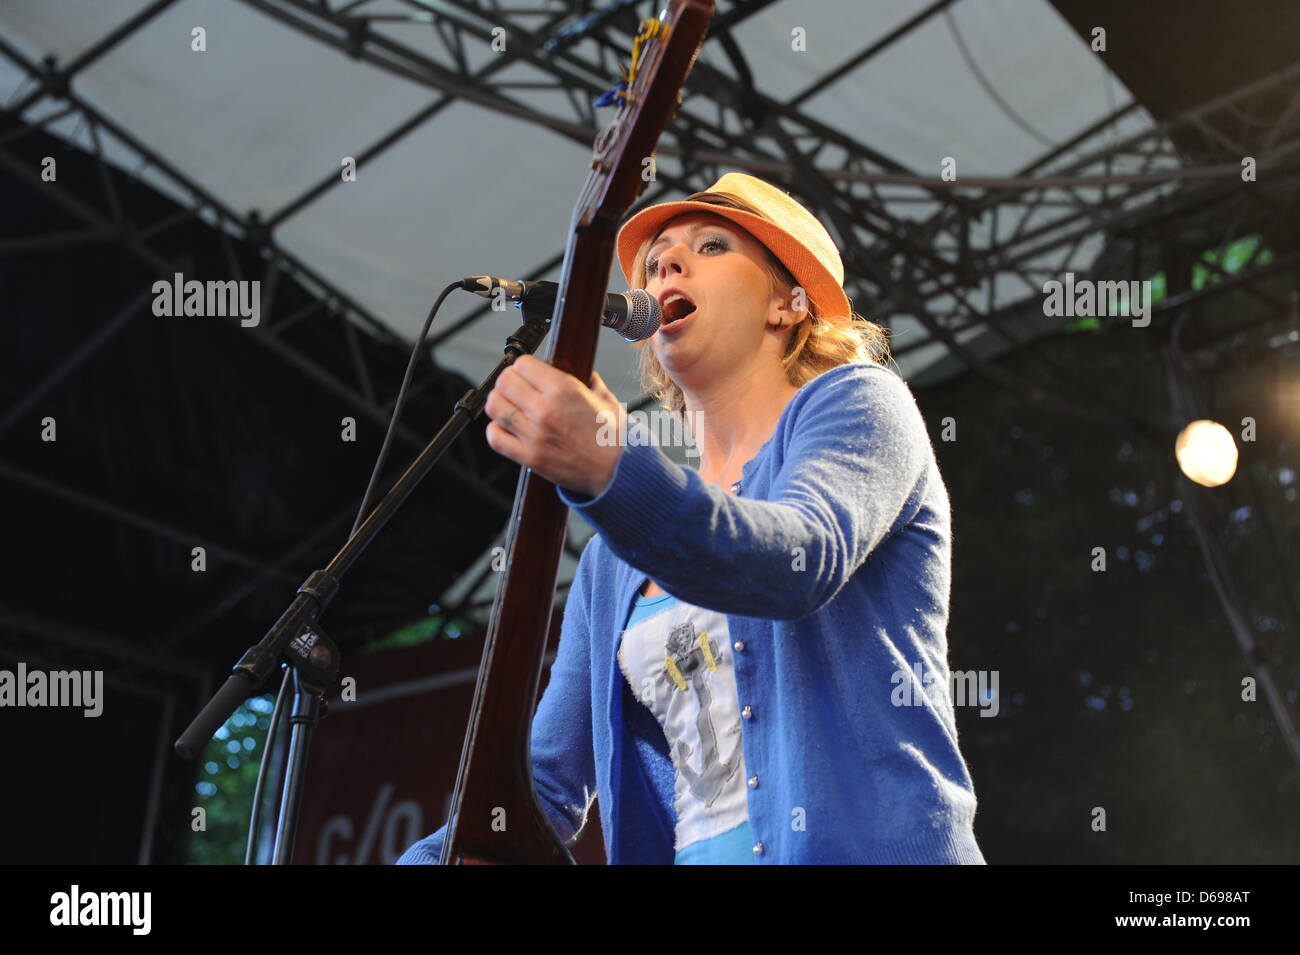 Turid Jorgensen of the Norwegian  folk-rock band Katzenjammer performs on stage in Cologne, Germany, 22 June 2012. - Stock Image